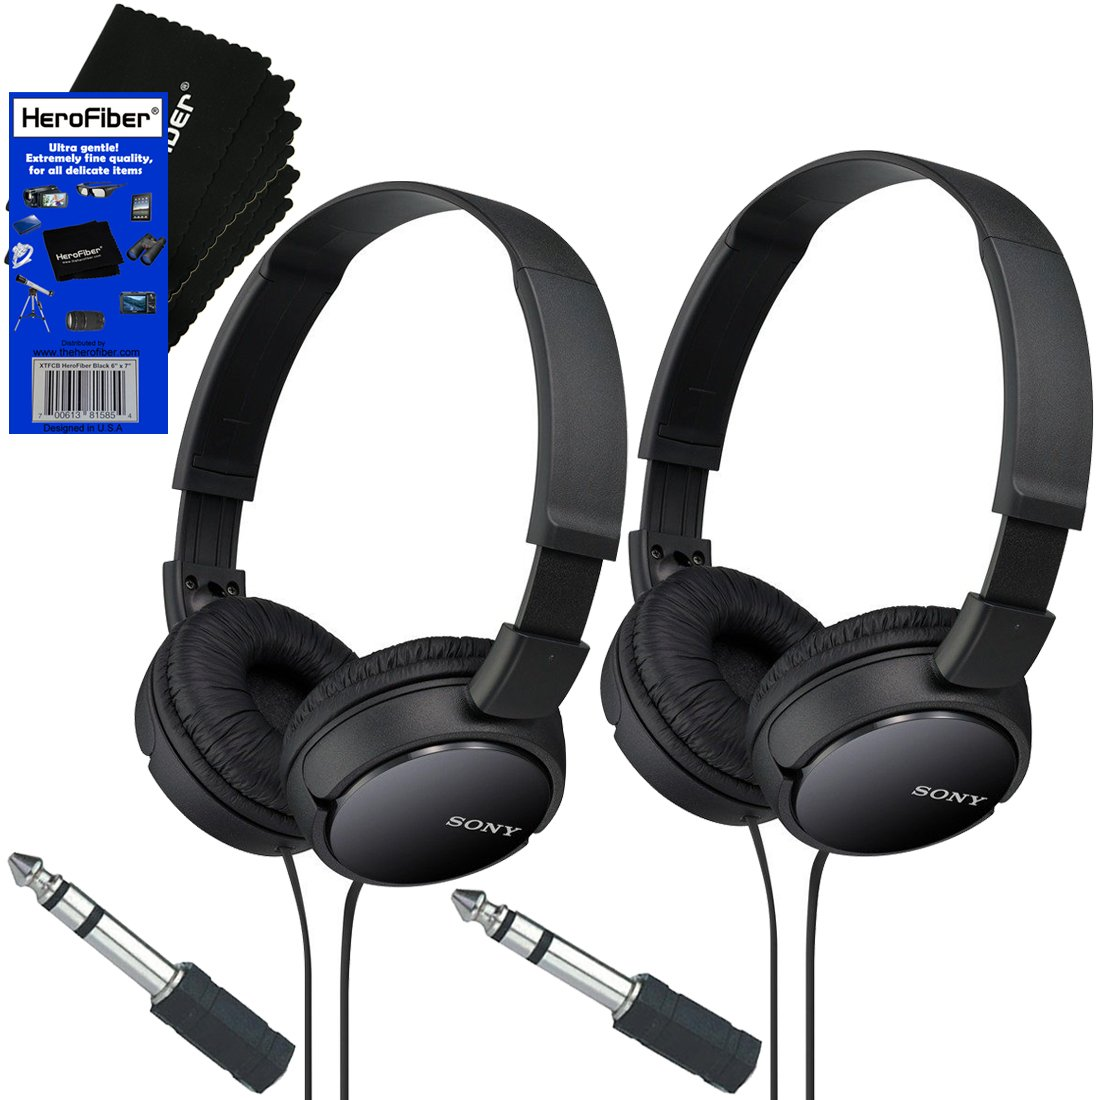 Sony MDRZX110 ZX Series Stereo Headphones (Black) with 3.5mm Mini Plug to 1/4 inch Headphone Adapter & HeroFiber® Ultra Gentle Cleaning Cloth (2 Pack) sony mini dv cassettes dvc premium series 3 pack